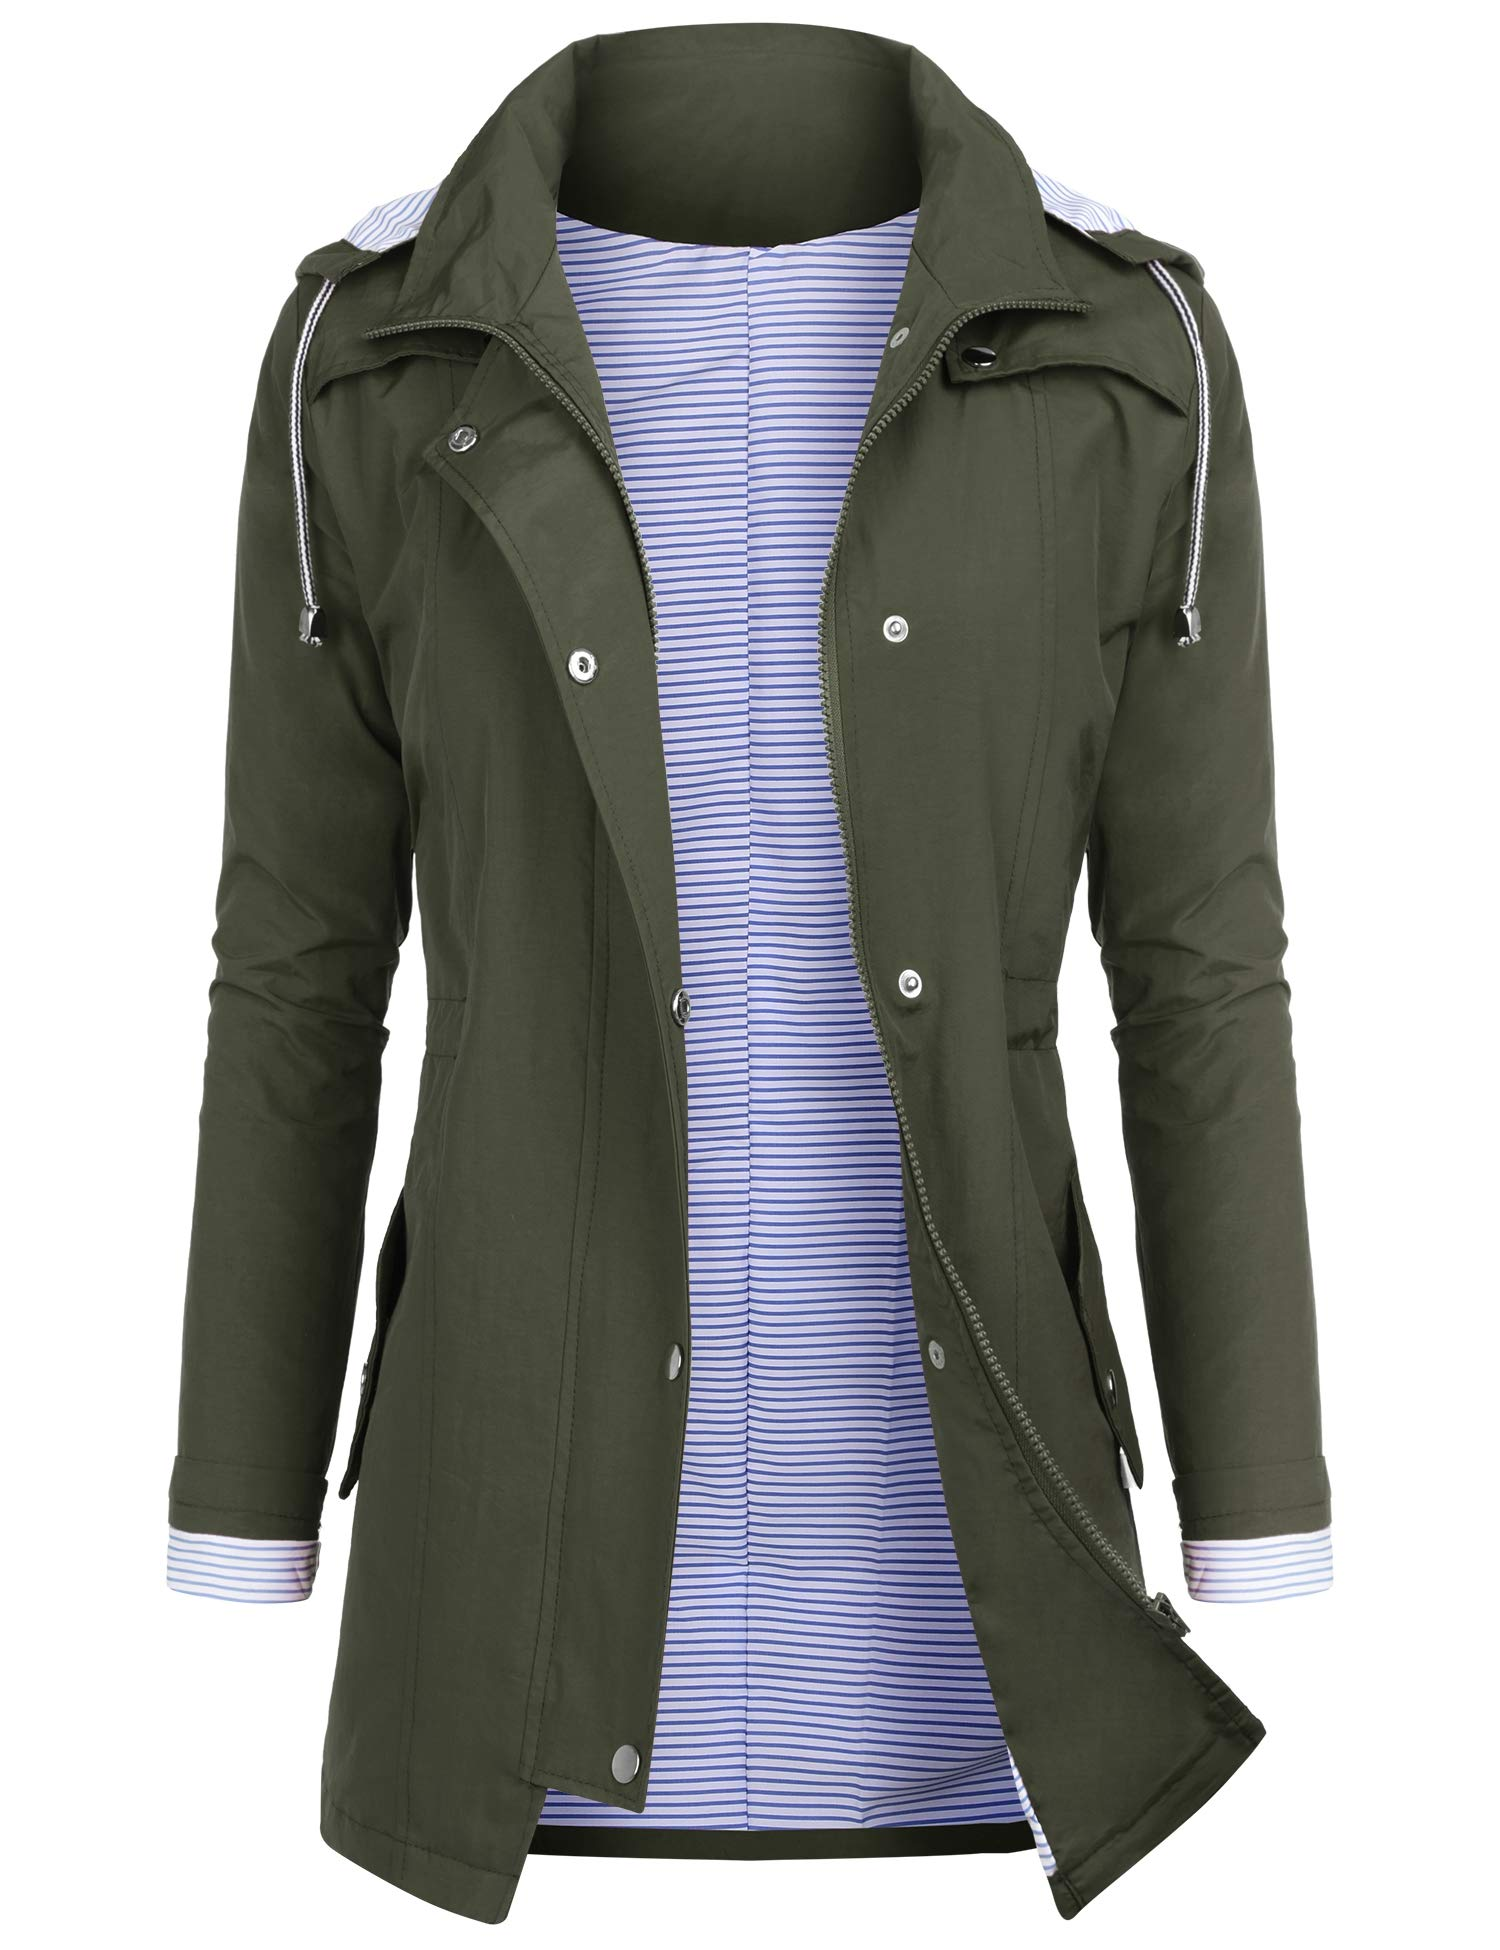 AUDIANO Rain Jackets Women Lightweight Raincoat Striped Lined Waterproof Windbreaker Active Outdoor Hooded Trench Coats Army Green M by AUDIANO